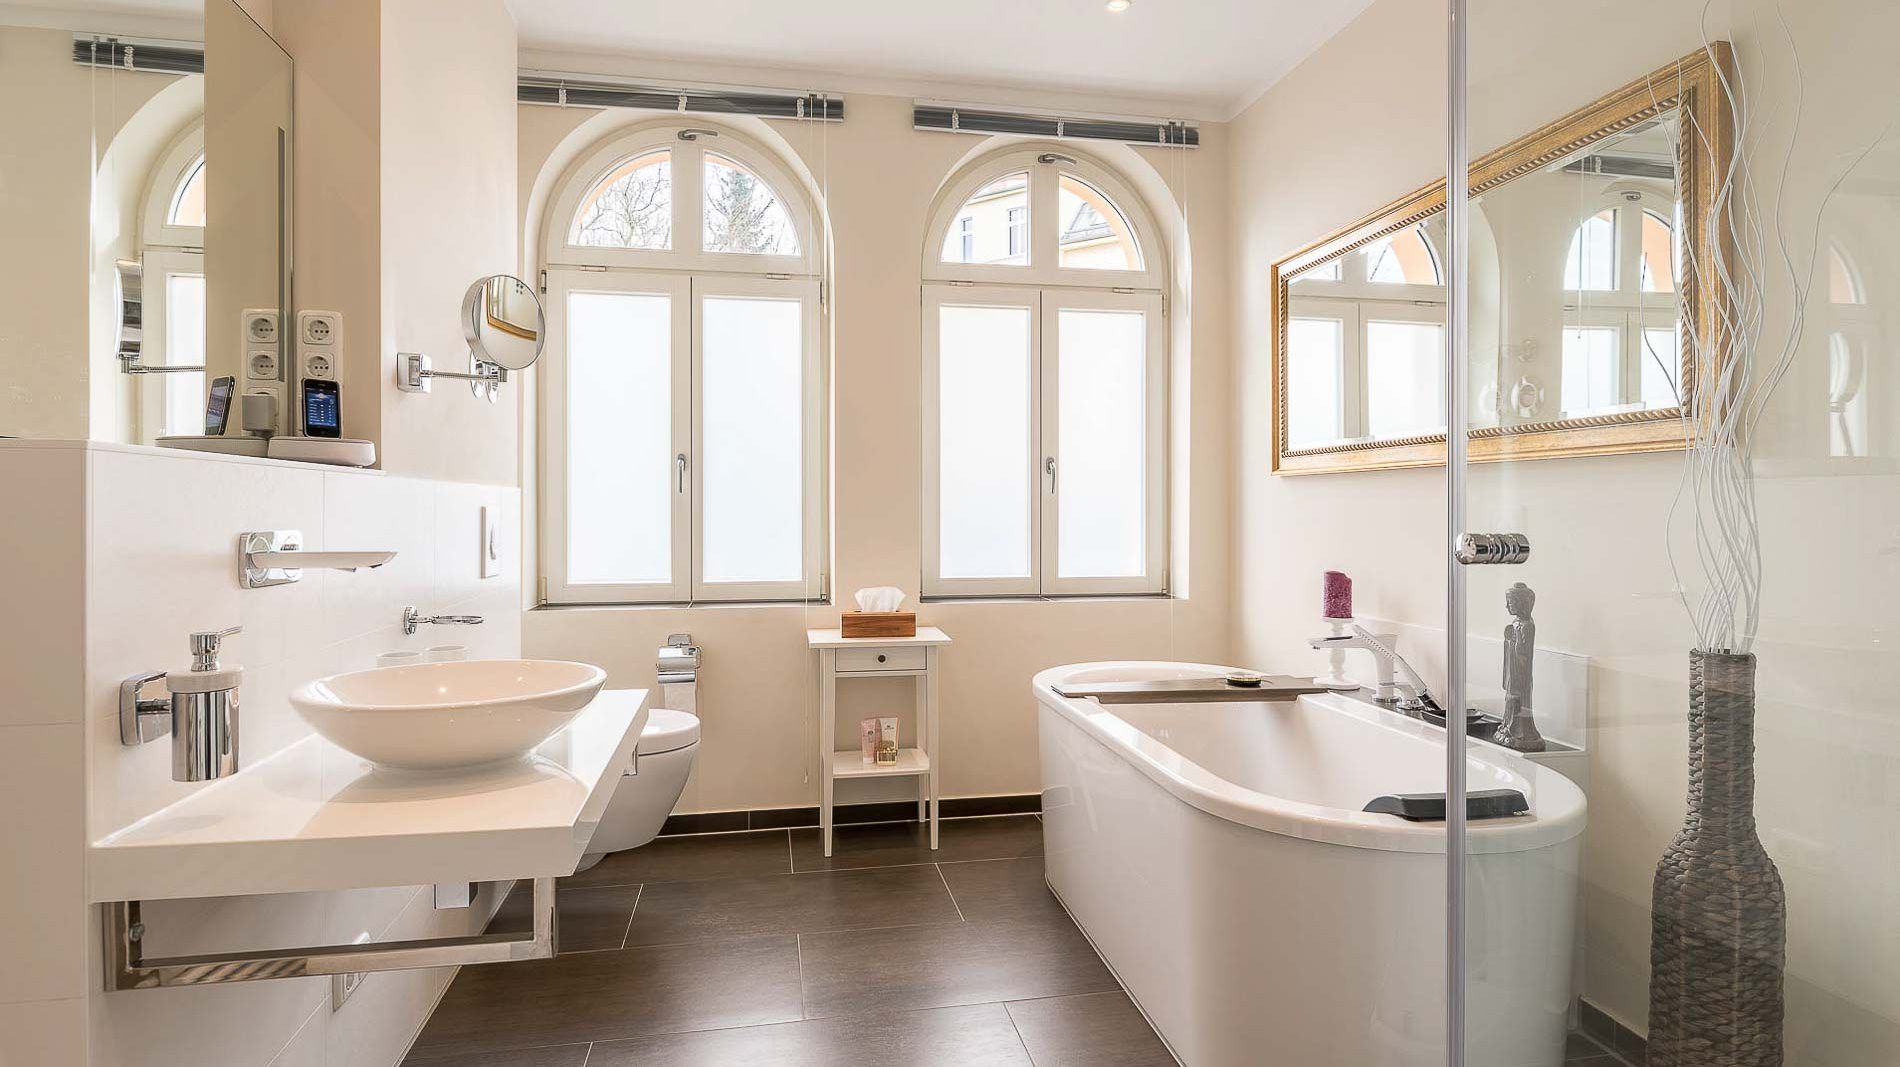 Modern Bathroom in historic Environment - PrimePhoto - RE Photo